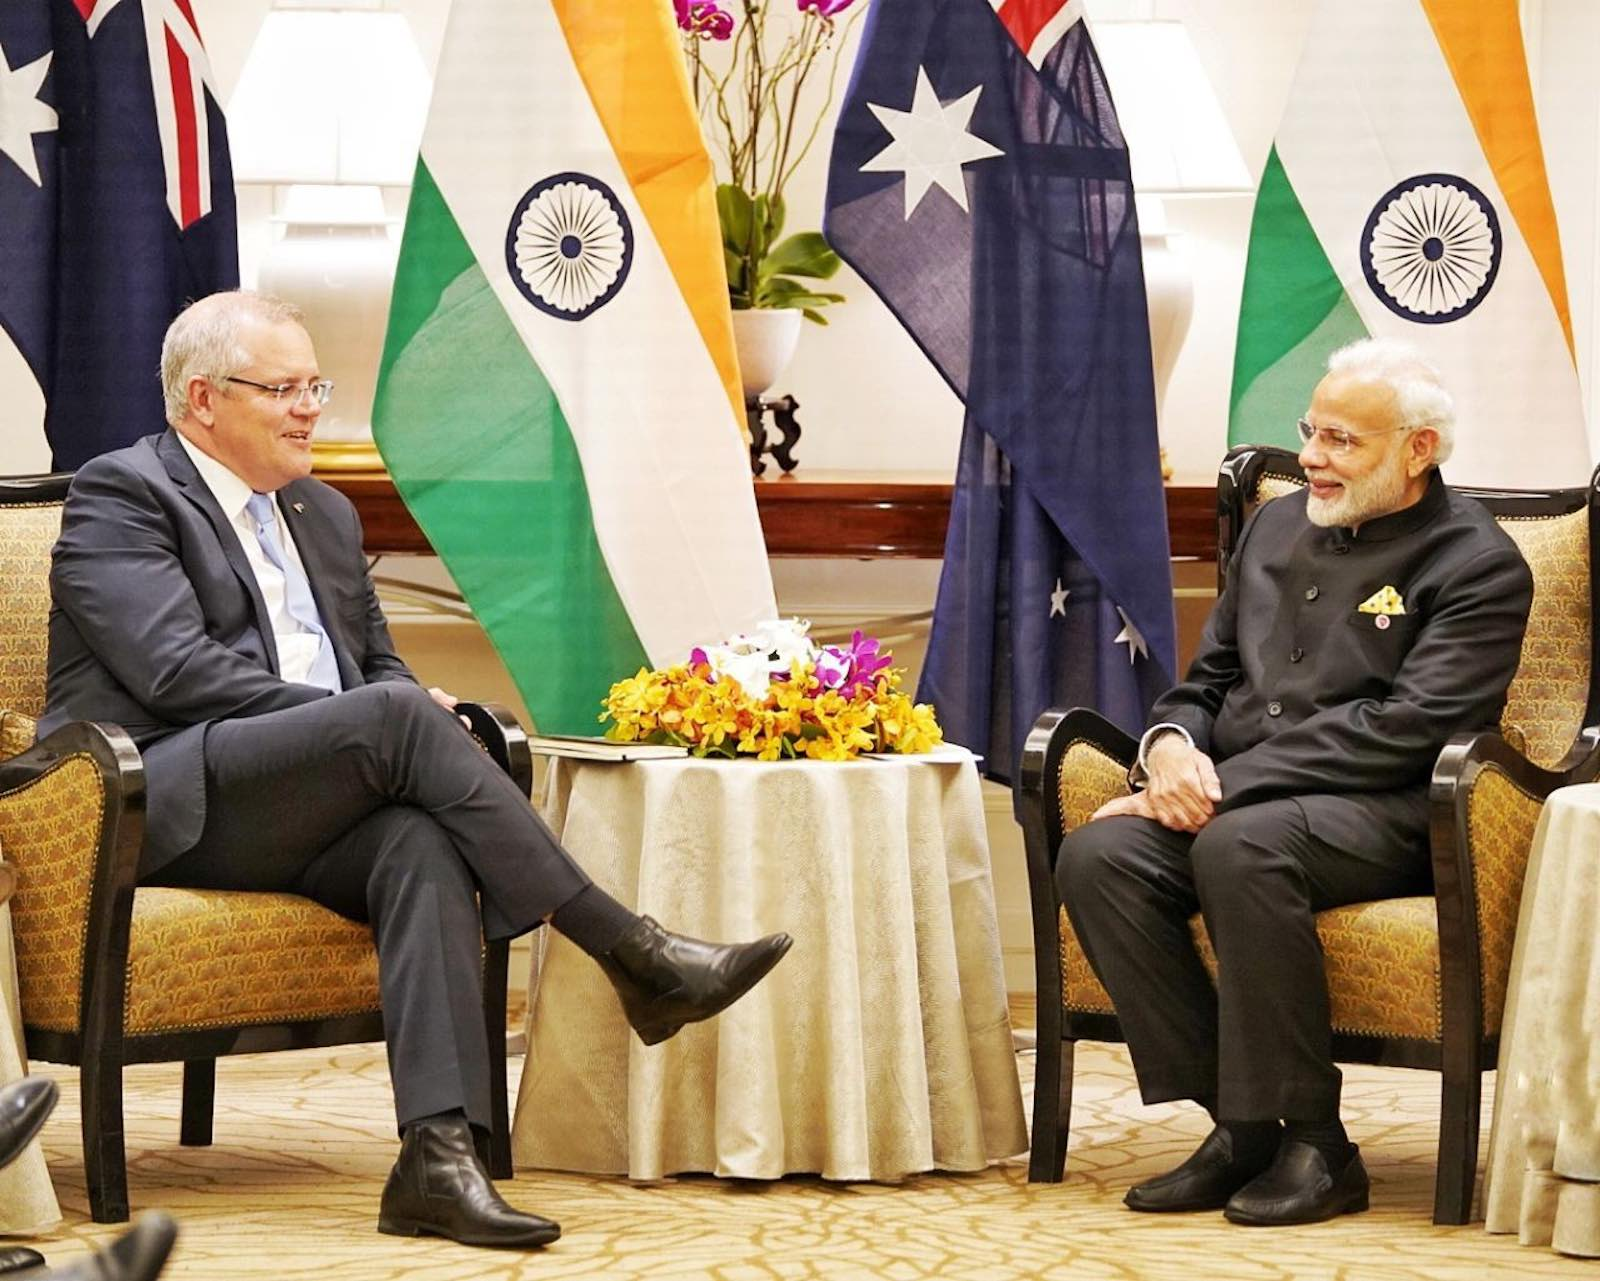 Prime Minister Scott Morrison and India's Prime Minister Narendra Modi (Photo: MEAphotogallery/Flickr)